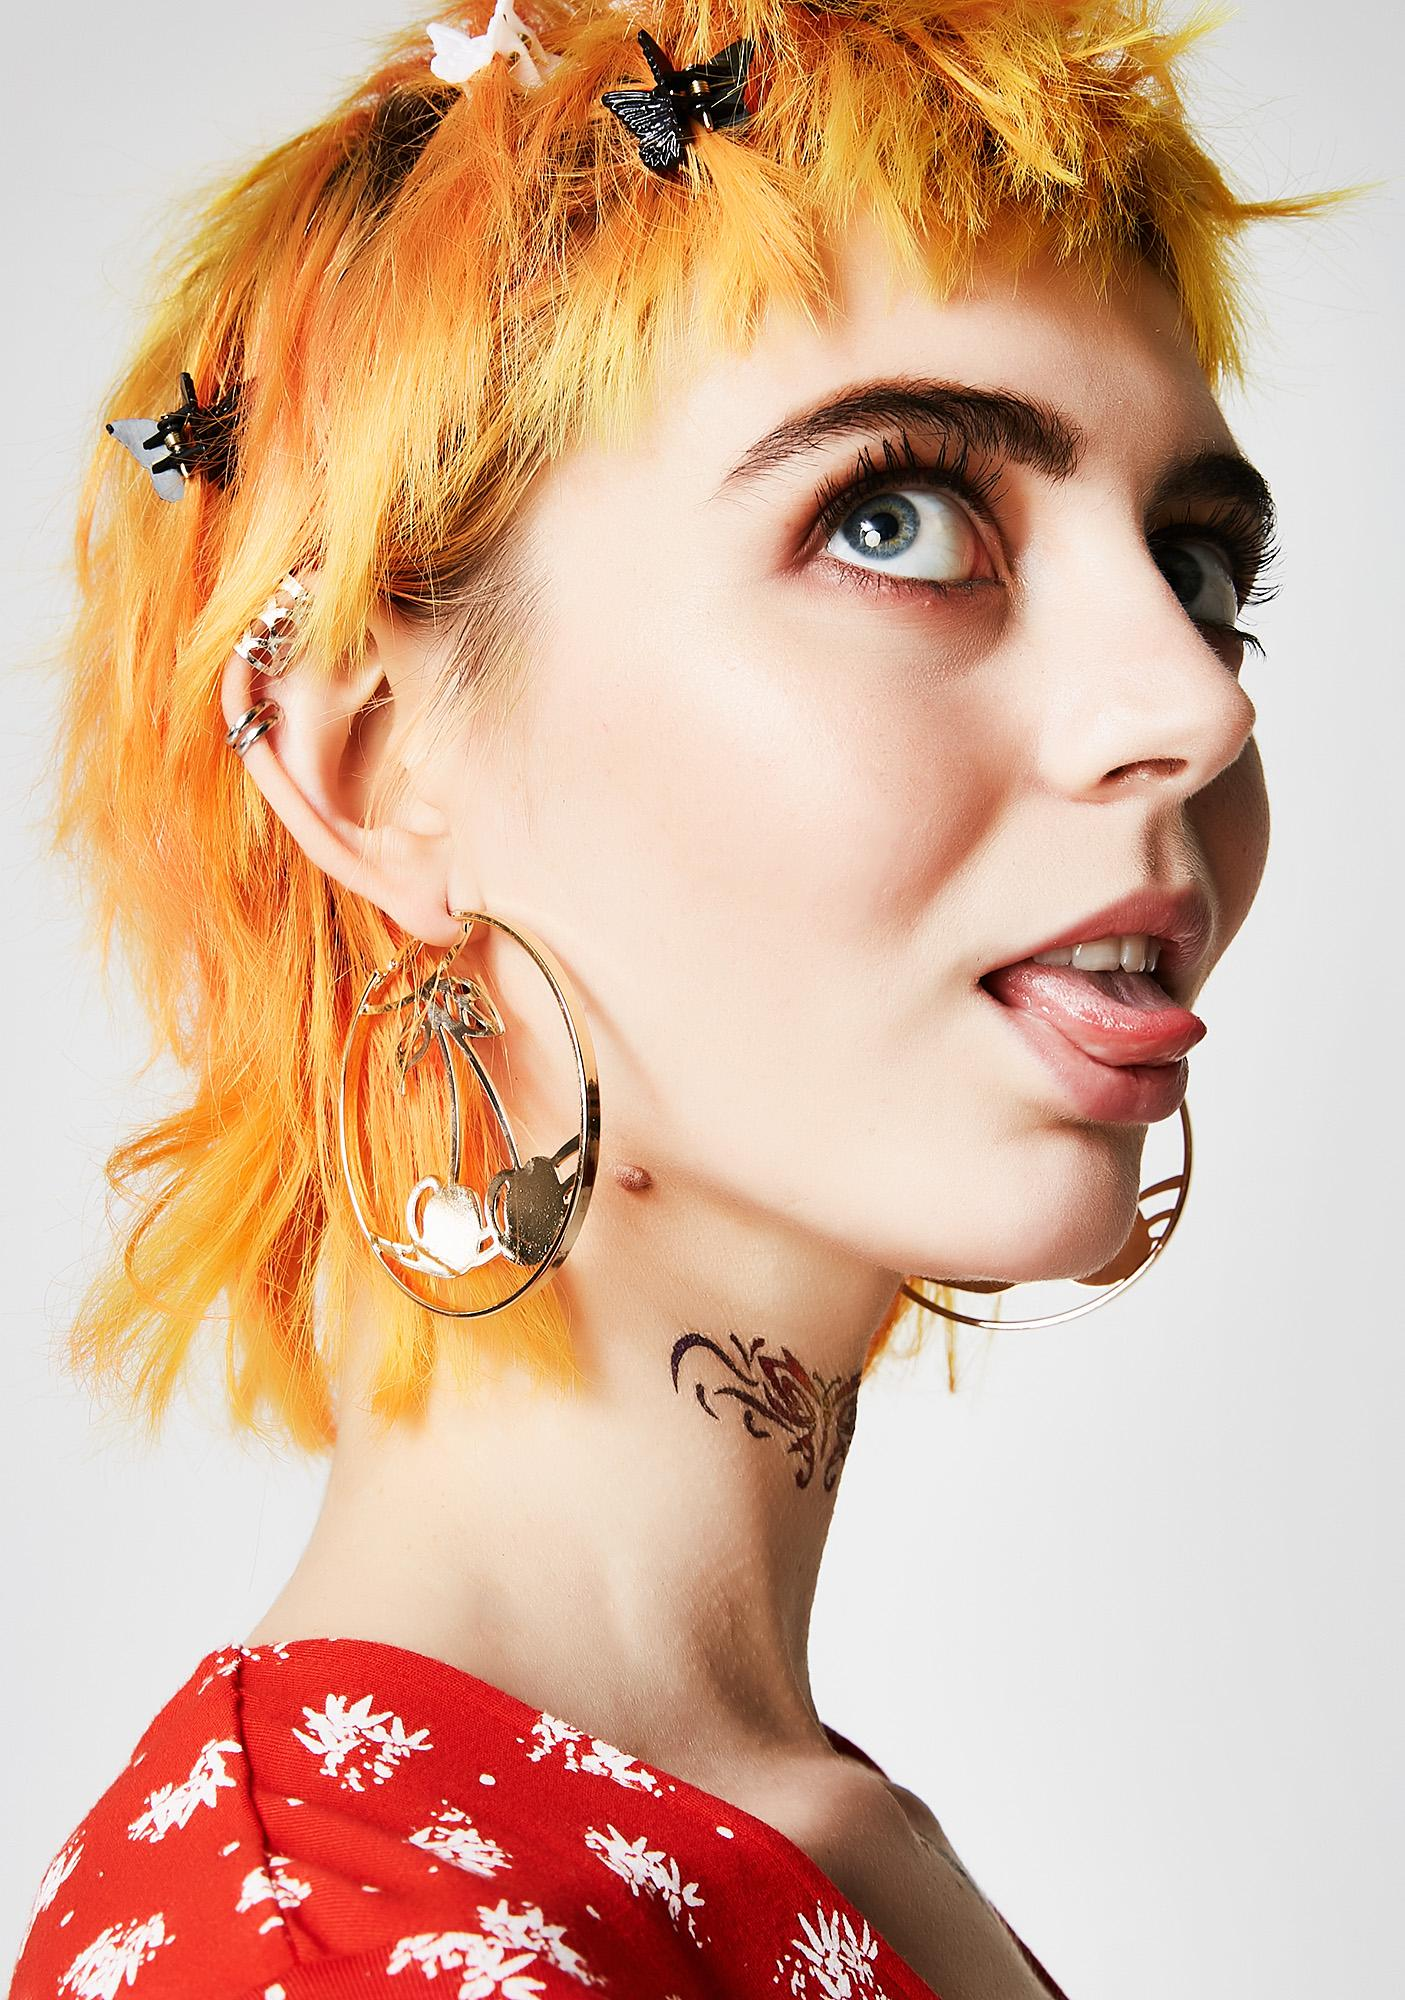 8 Other Reasons Cherry Bomb Earrings